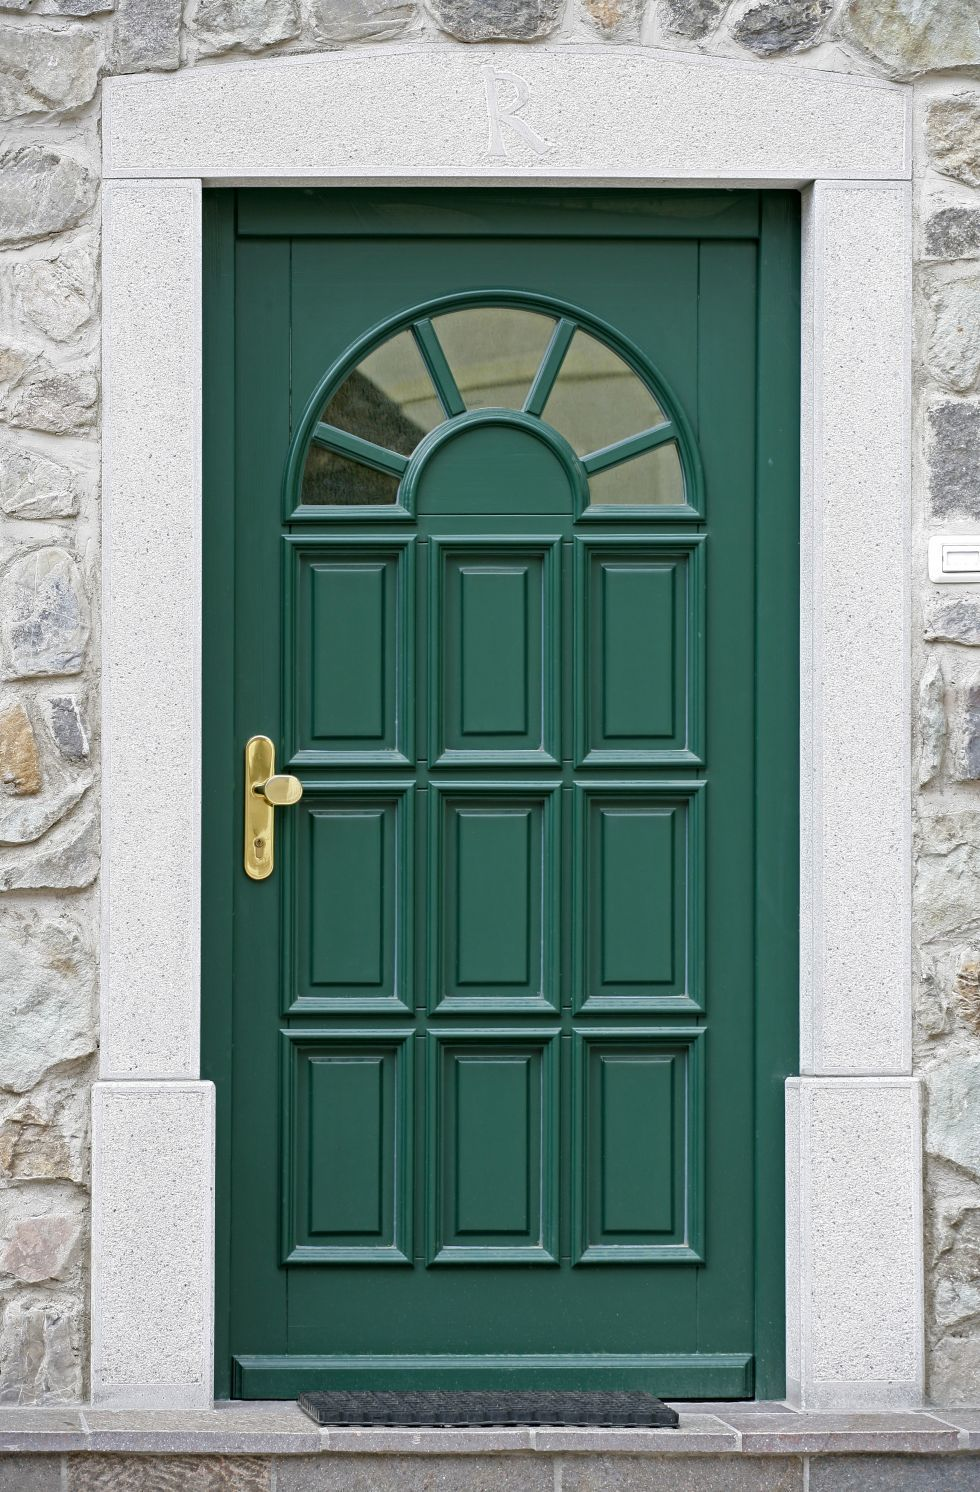 10 Beautiful Ideas for a Welcoming Front Door